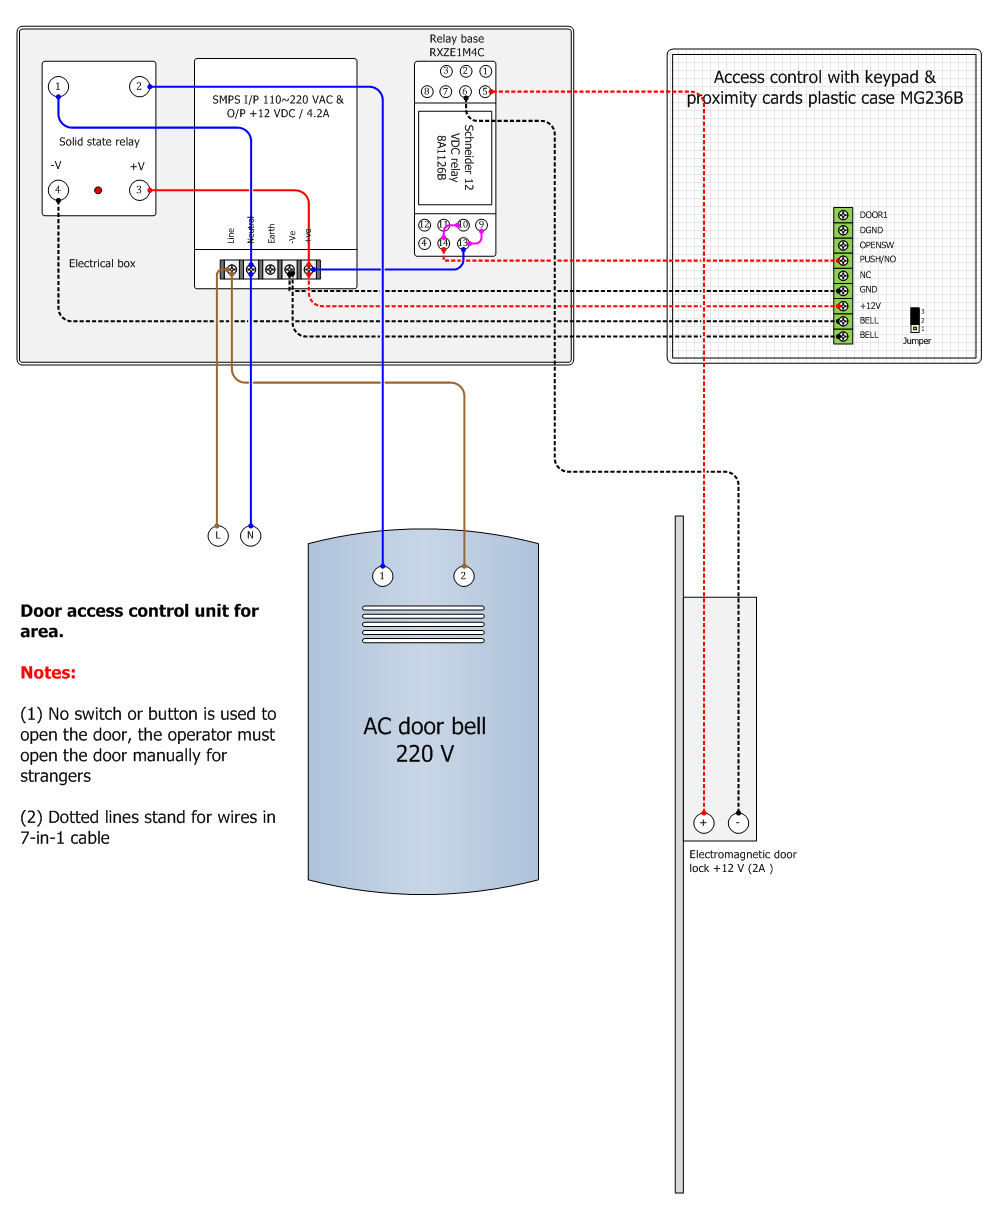 eng shady mohsen blog access control mg236b wiring diagram ac door bell